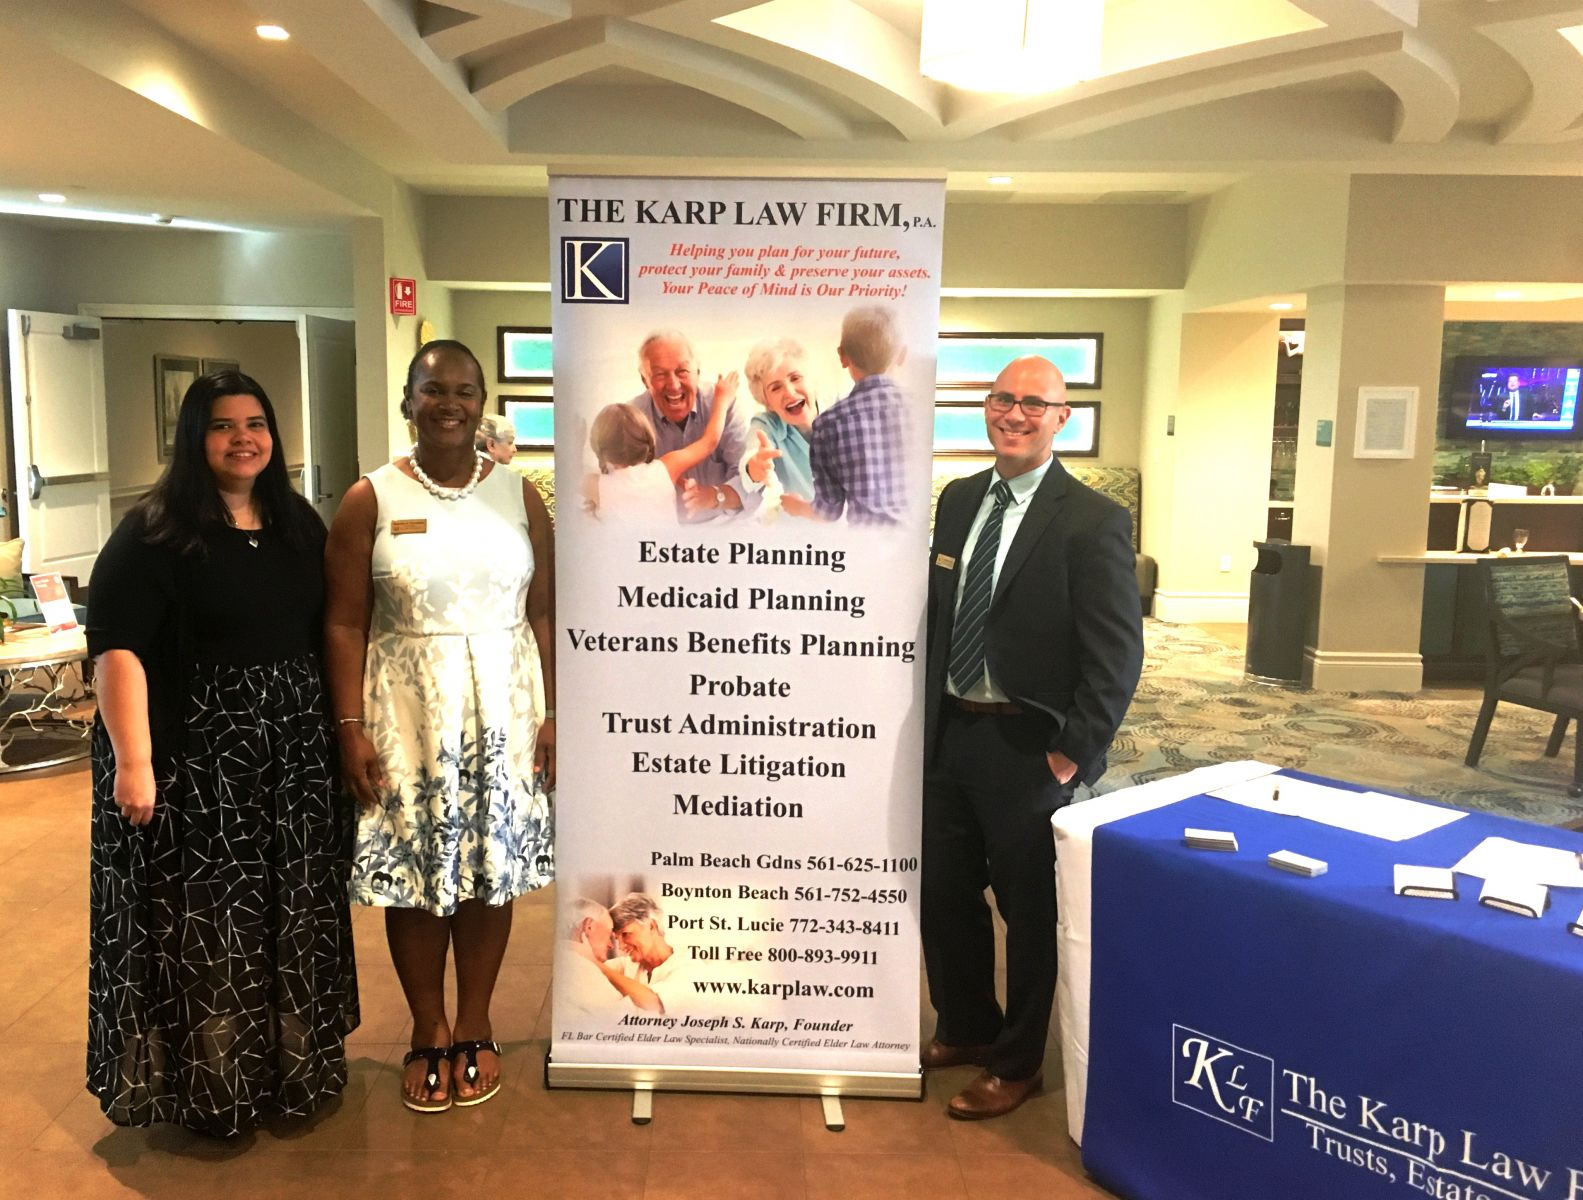 On the scene at HarborChase from The Karp Law Firm are (L-R) Quetxy Pagan, Estate Planning Assistant; Deeanna Farrington, MSW, Case Manager Supervisor; and Attorney Jonathan Karp